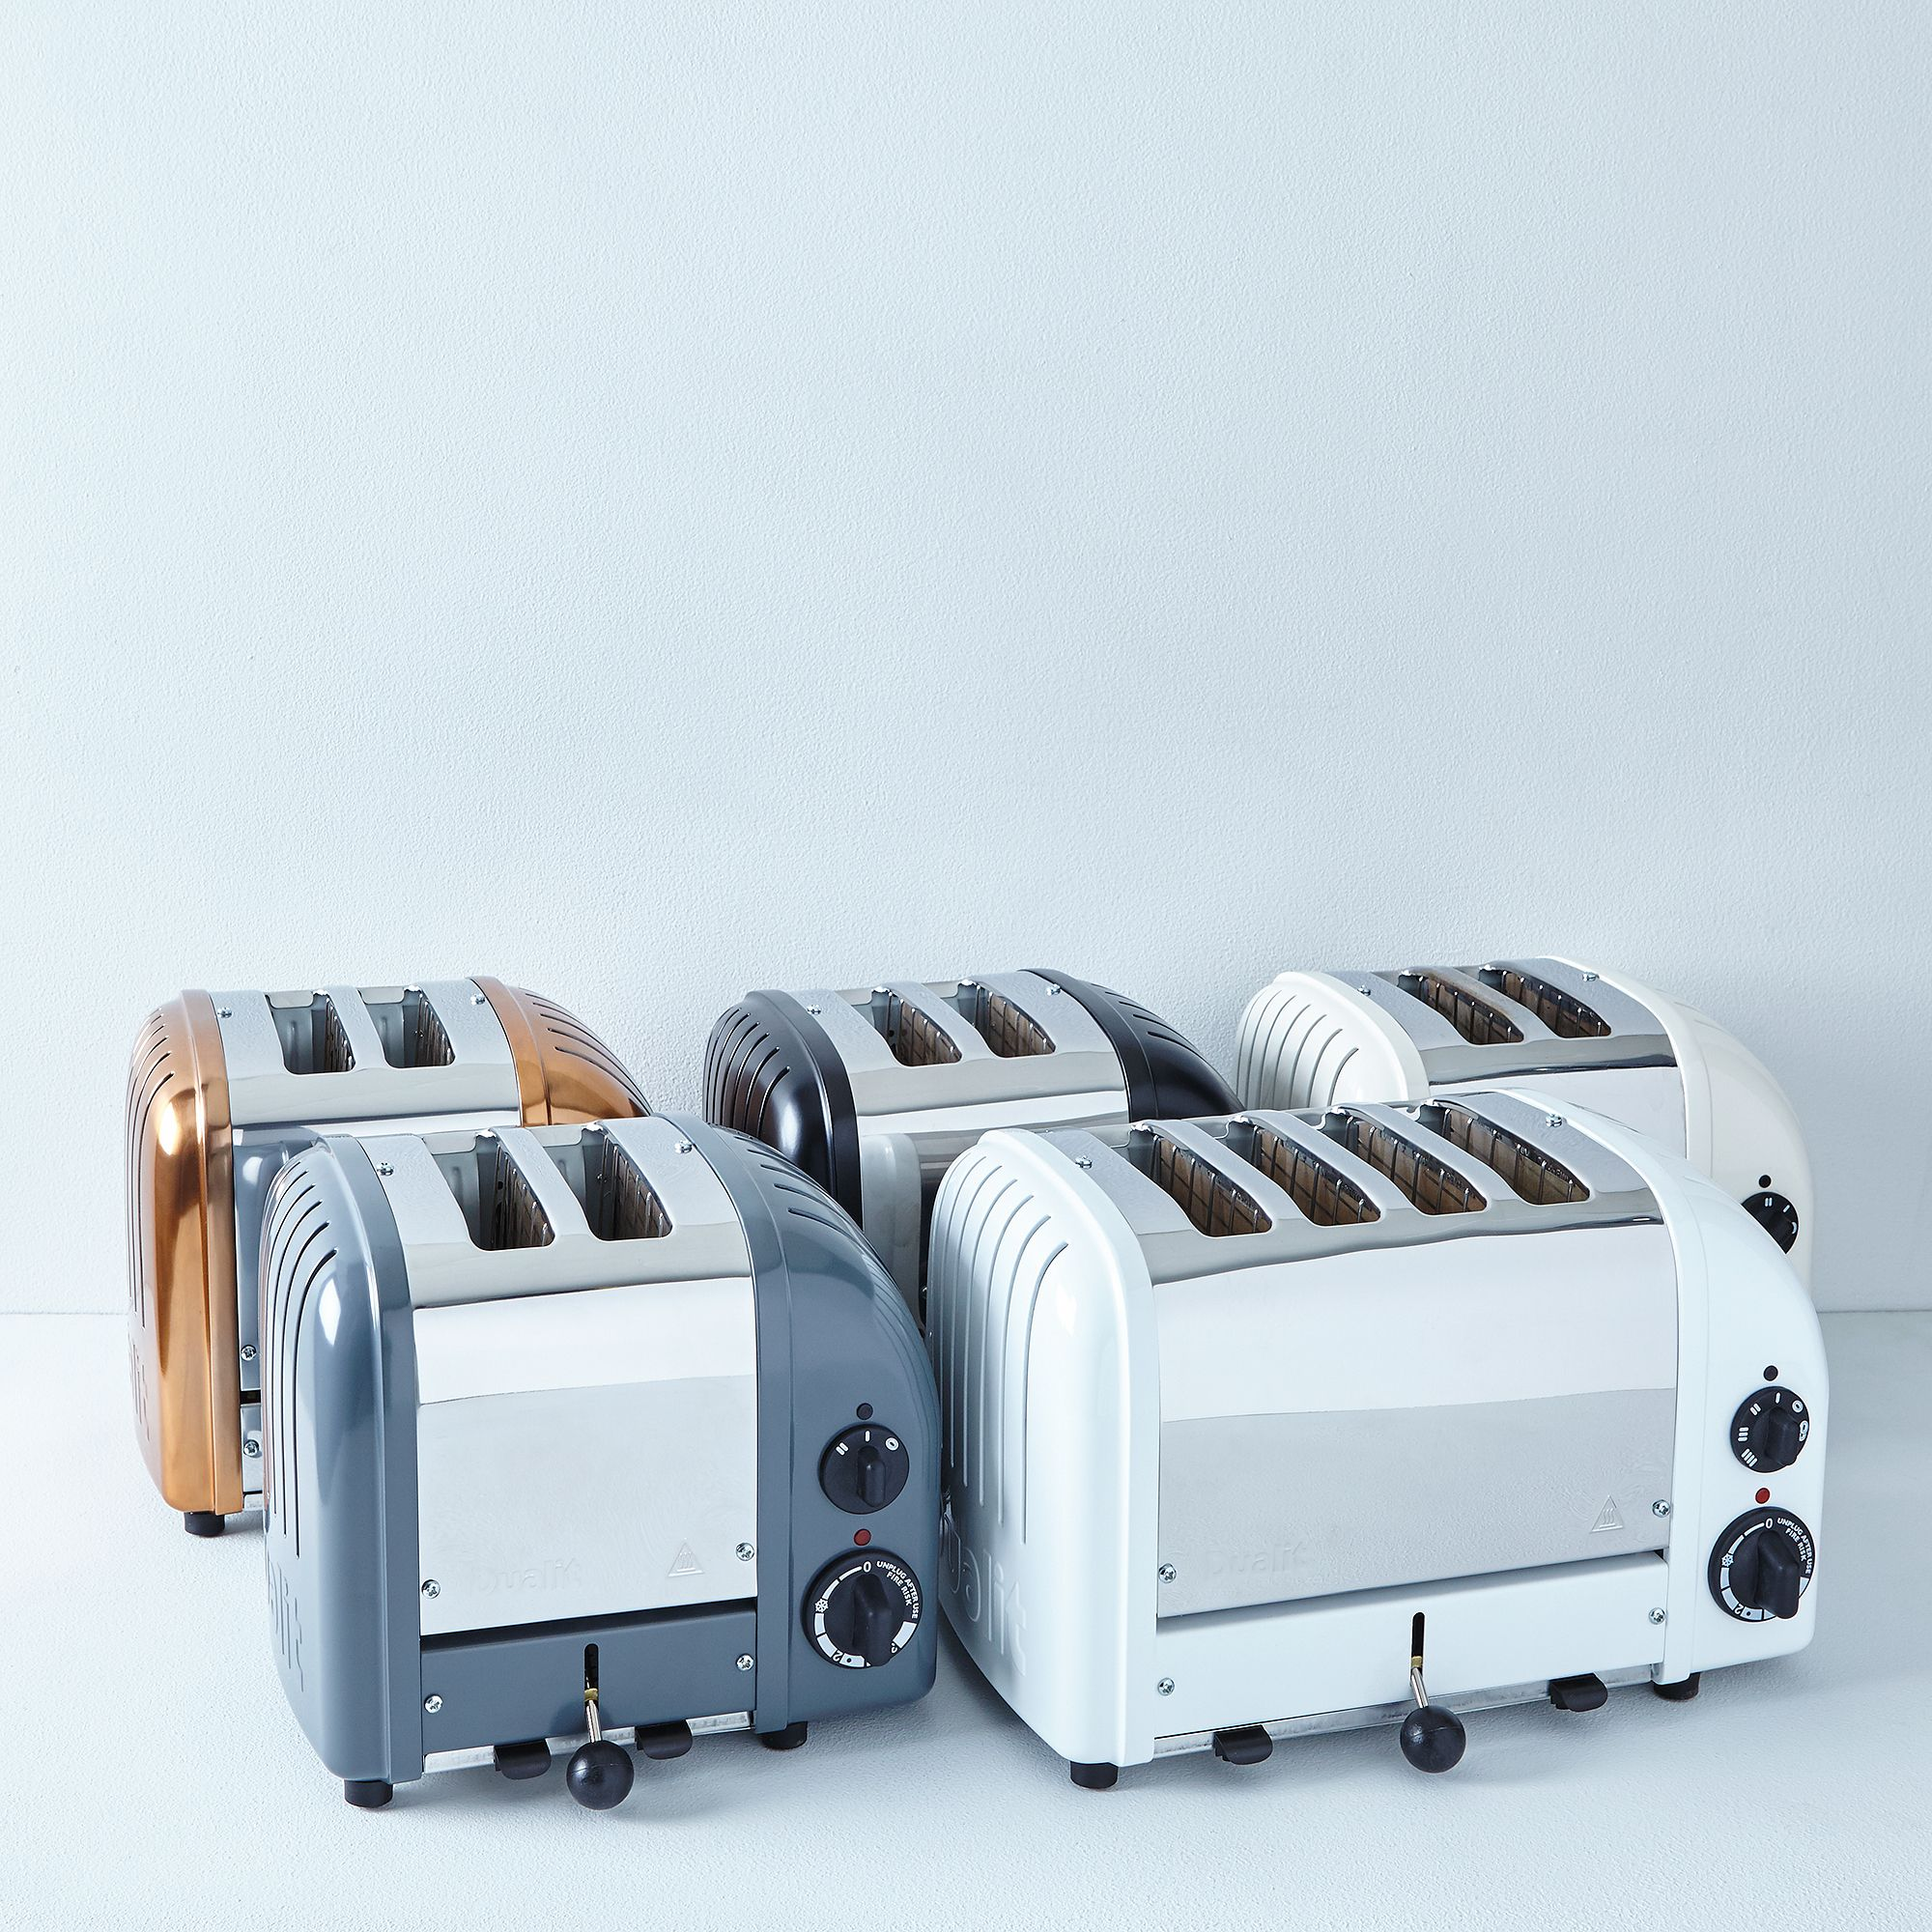 Dualit Toaster 2 or 4 Slice on Food52